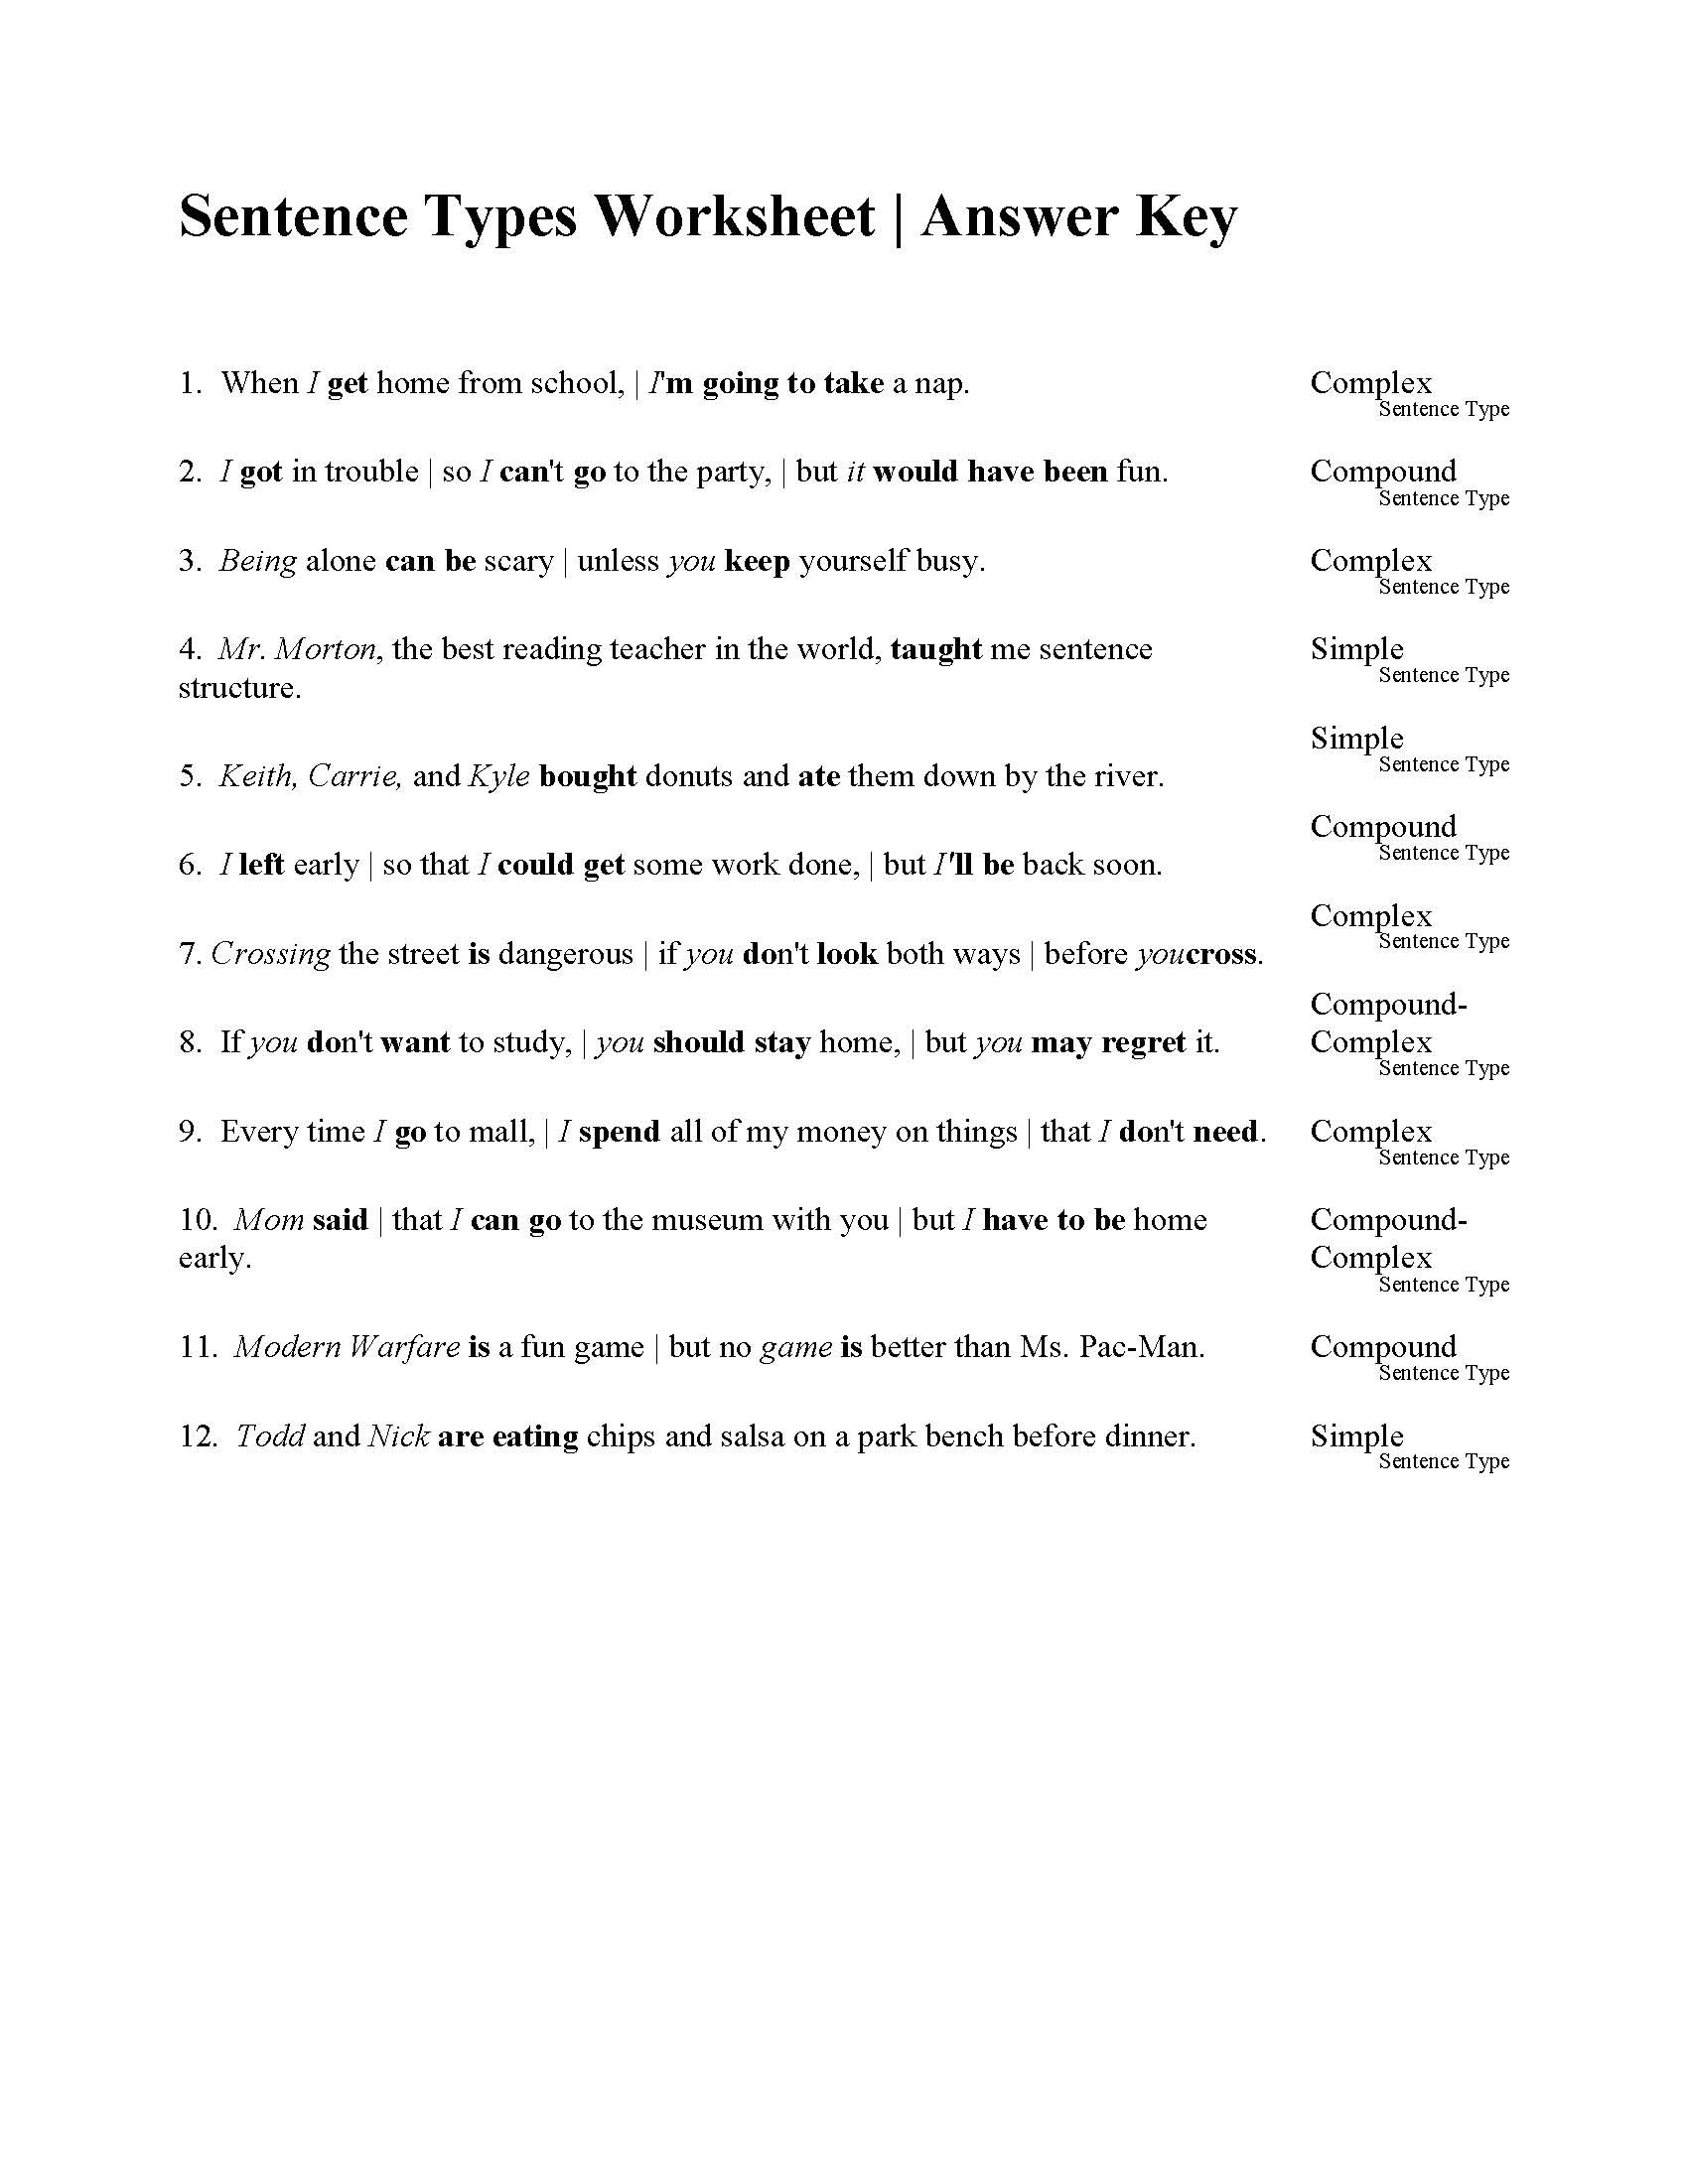 Compound Sentences Worksheet with Answers Sentences Types Worksheet